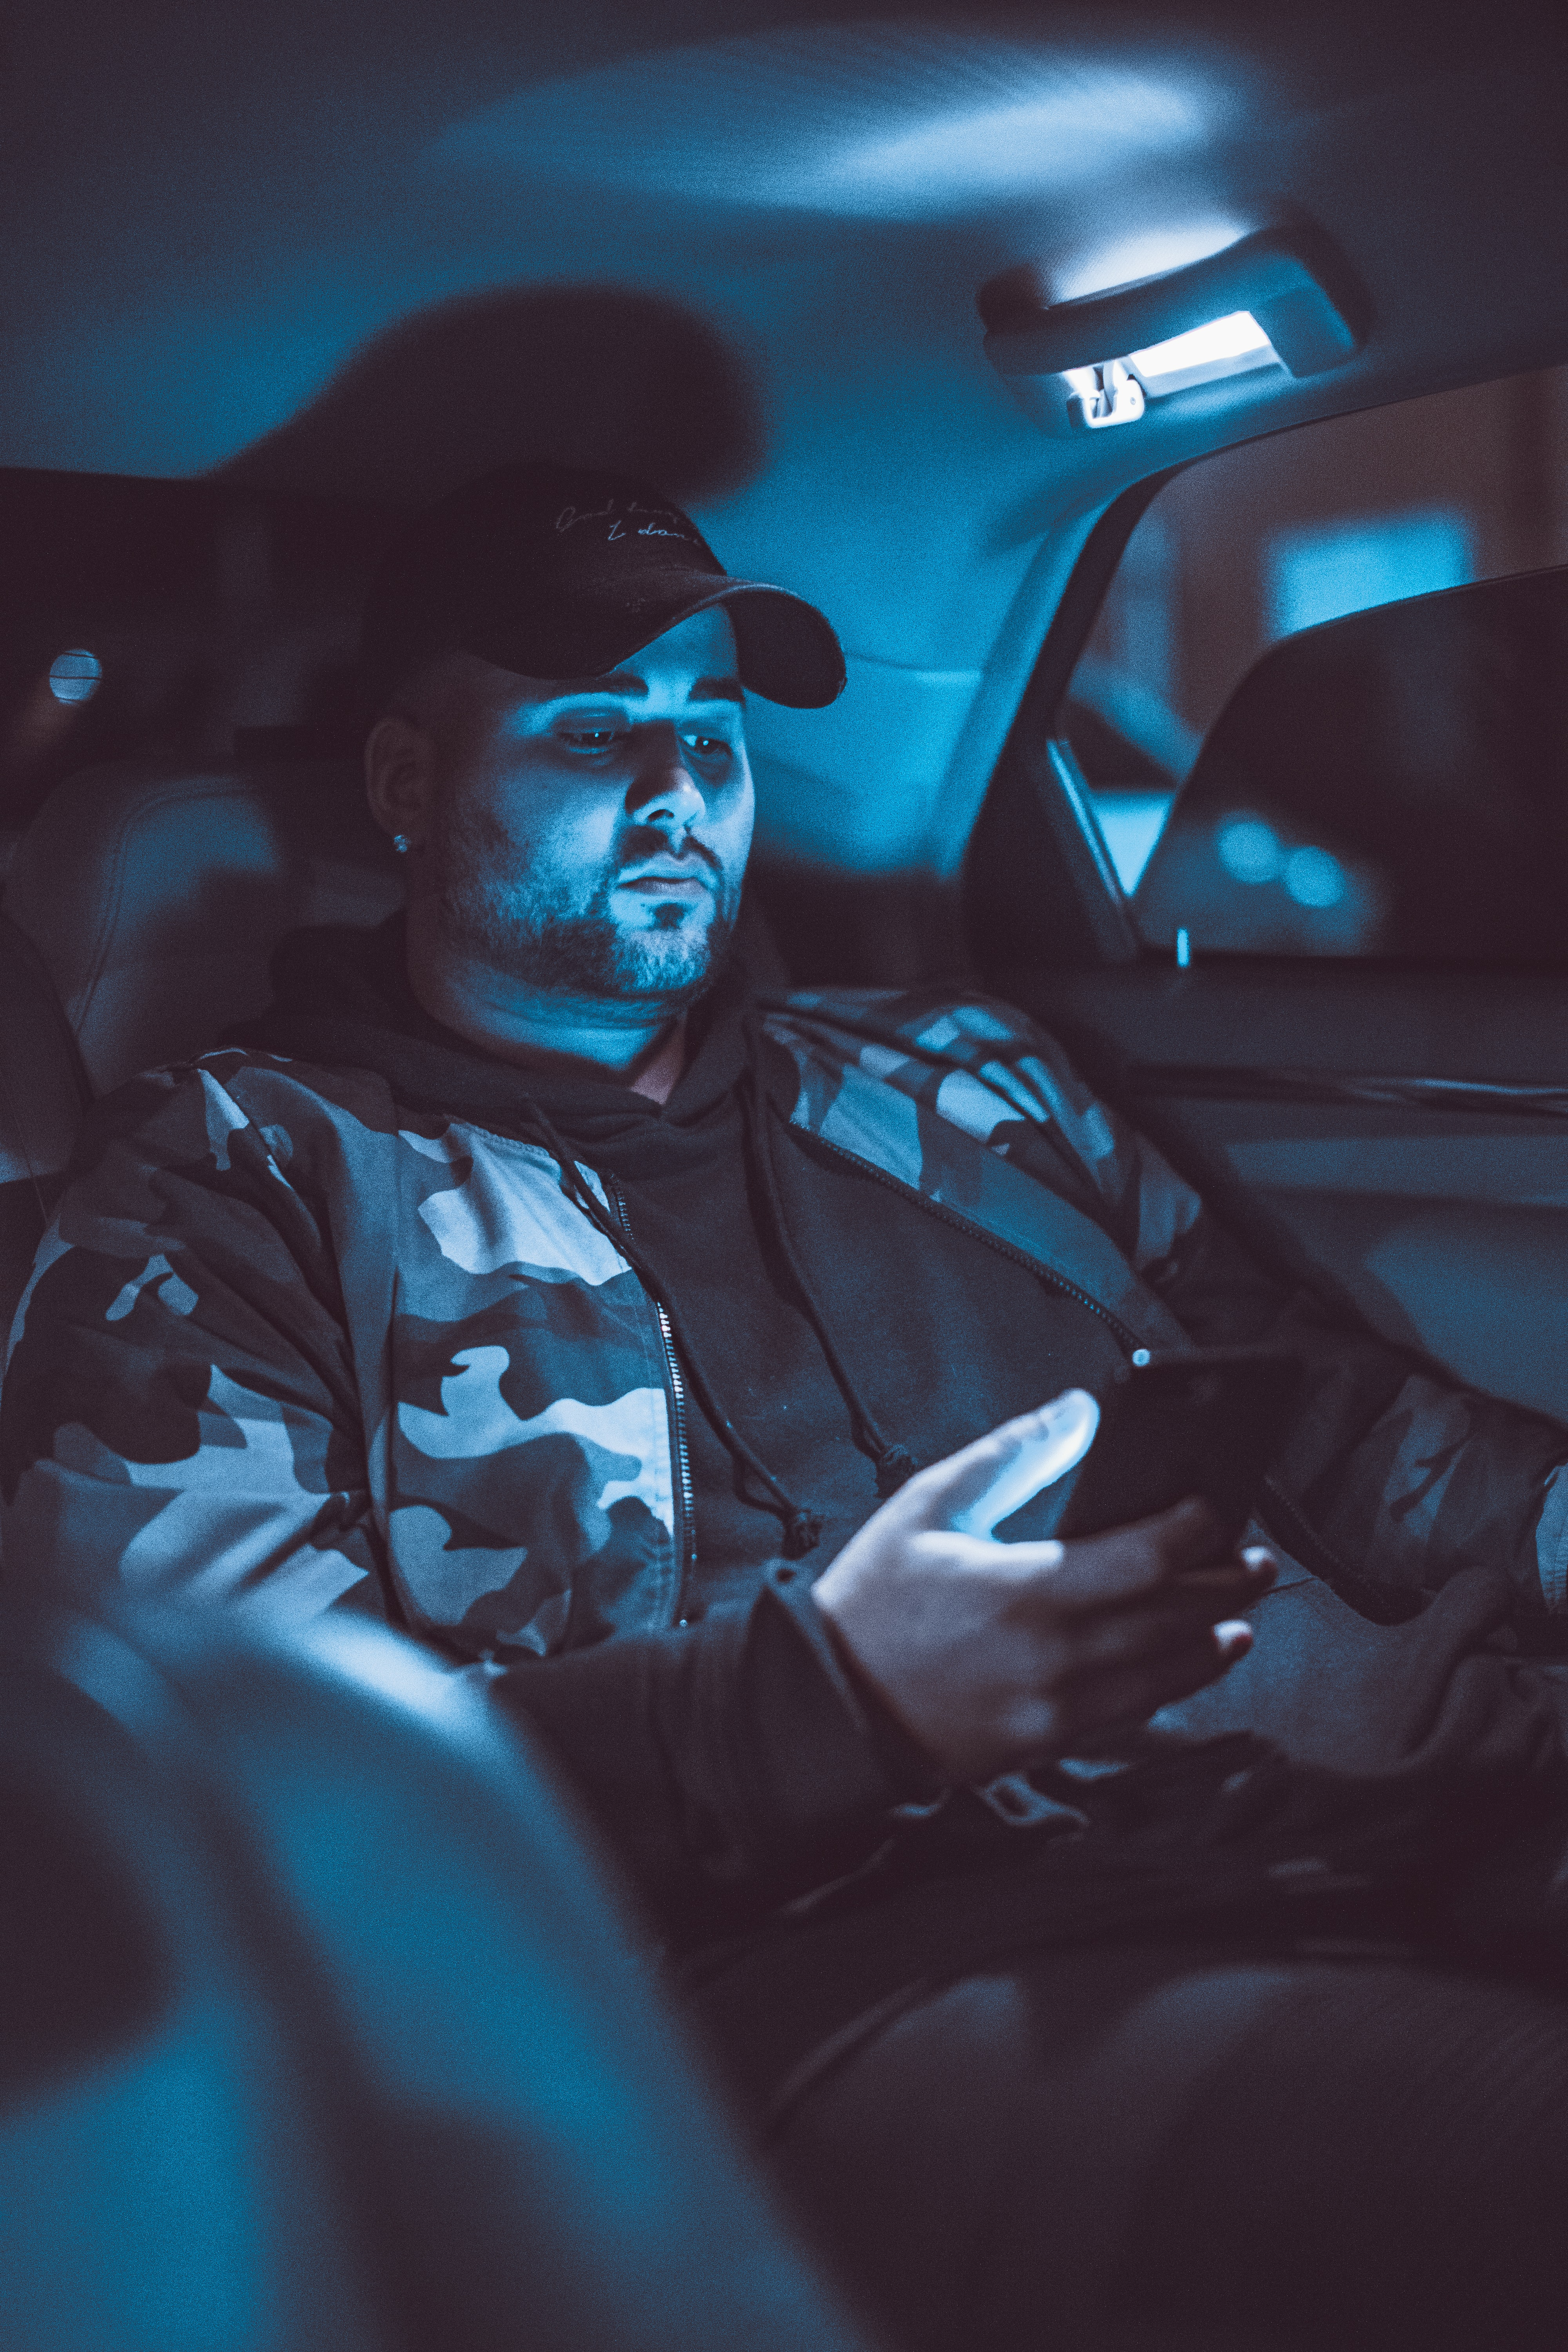 man holding smartphone in vehicle